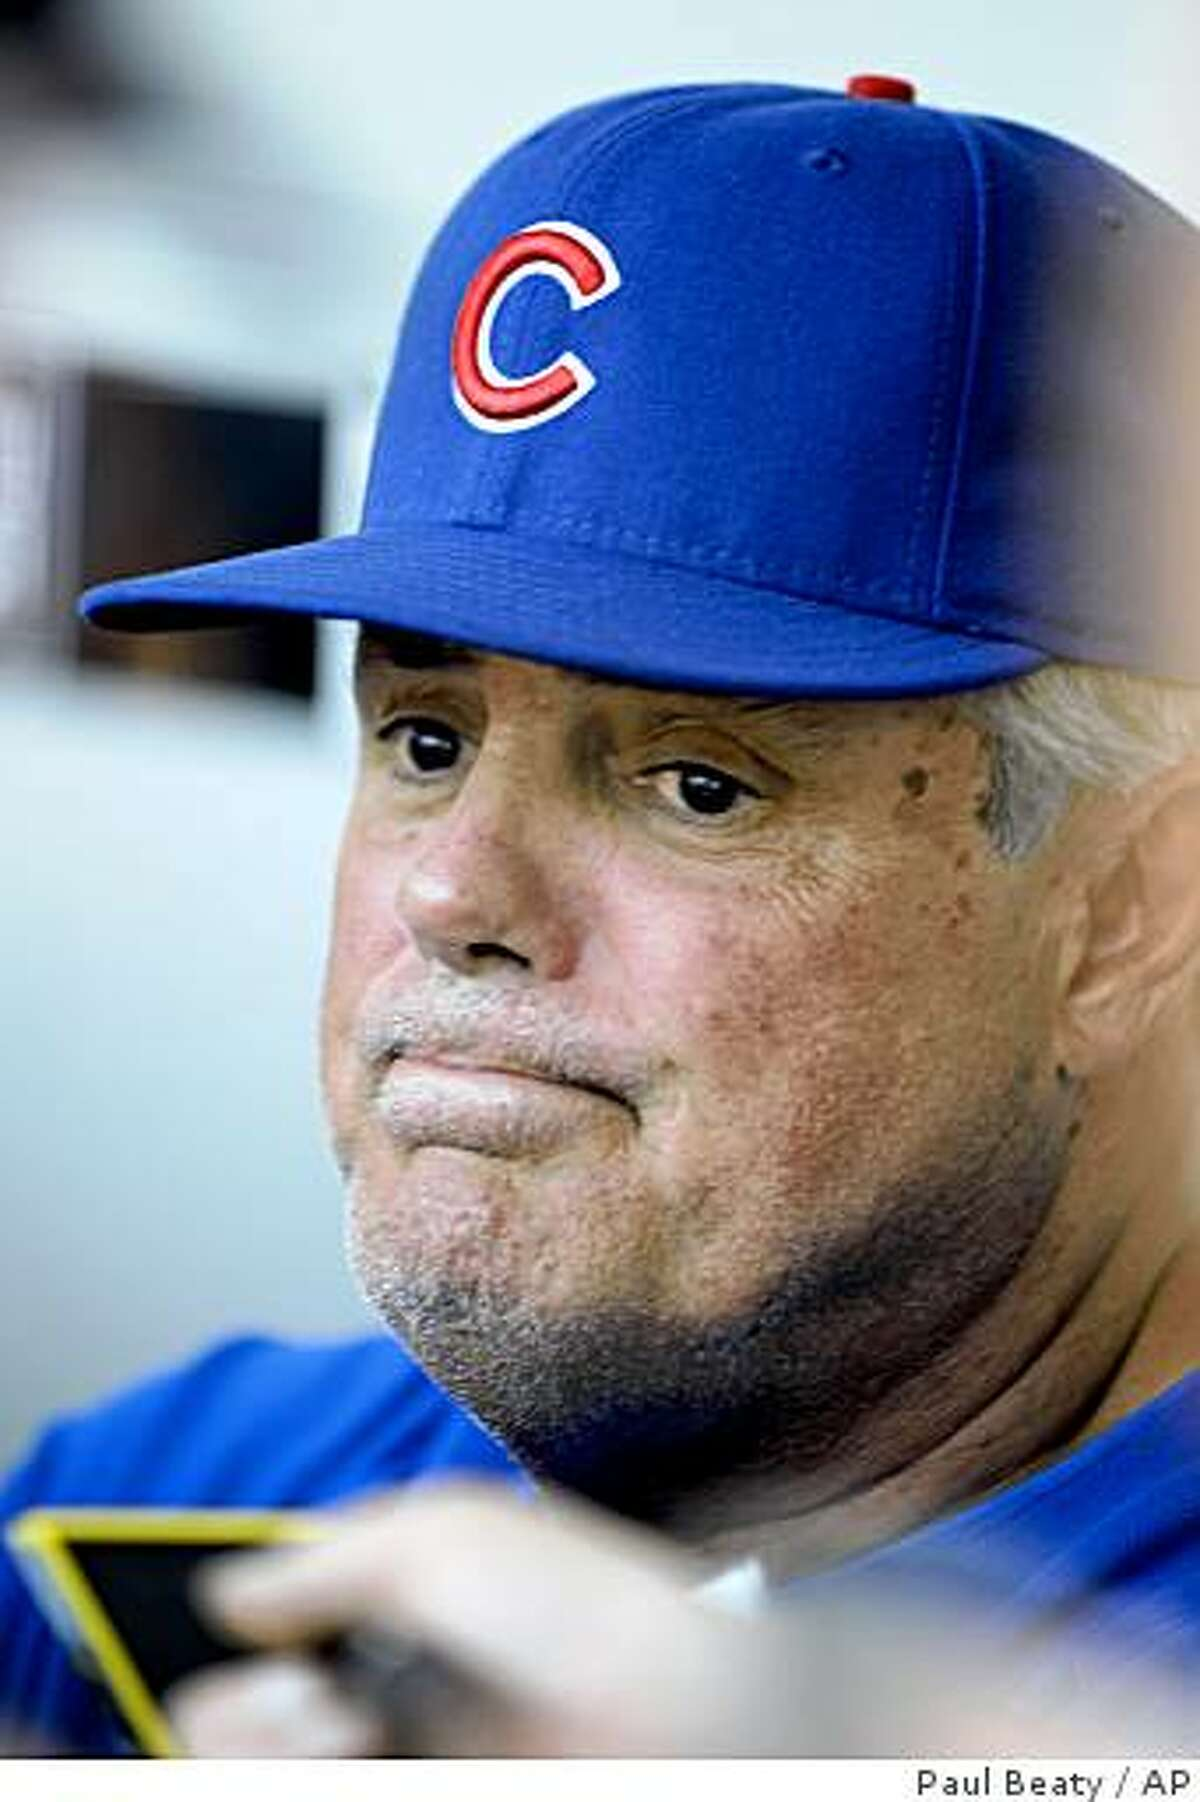 Chicago Cubs manager Lou Piniella talks to the media before an interleague baseball game against the Chicago White Sox at U.S. Cellular Field in Chicago, on Friday, June, 26, 2009. (AP Photo/Paul Beaty)